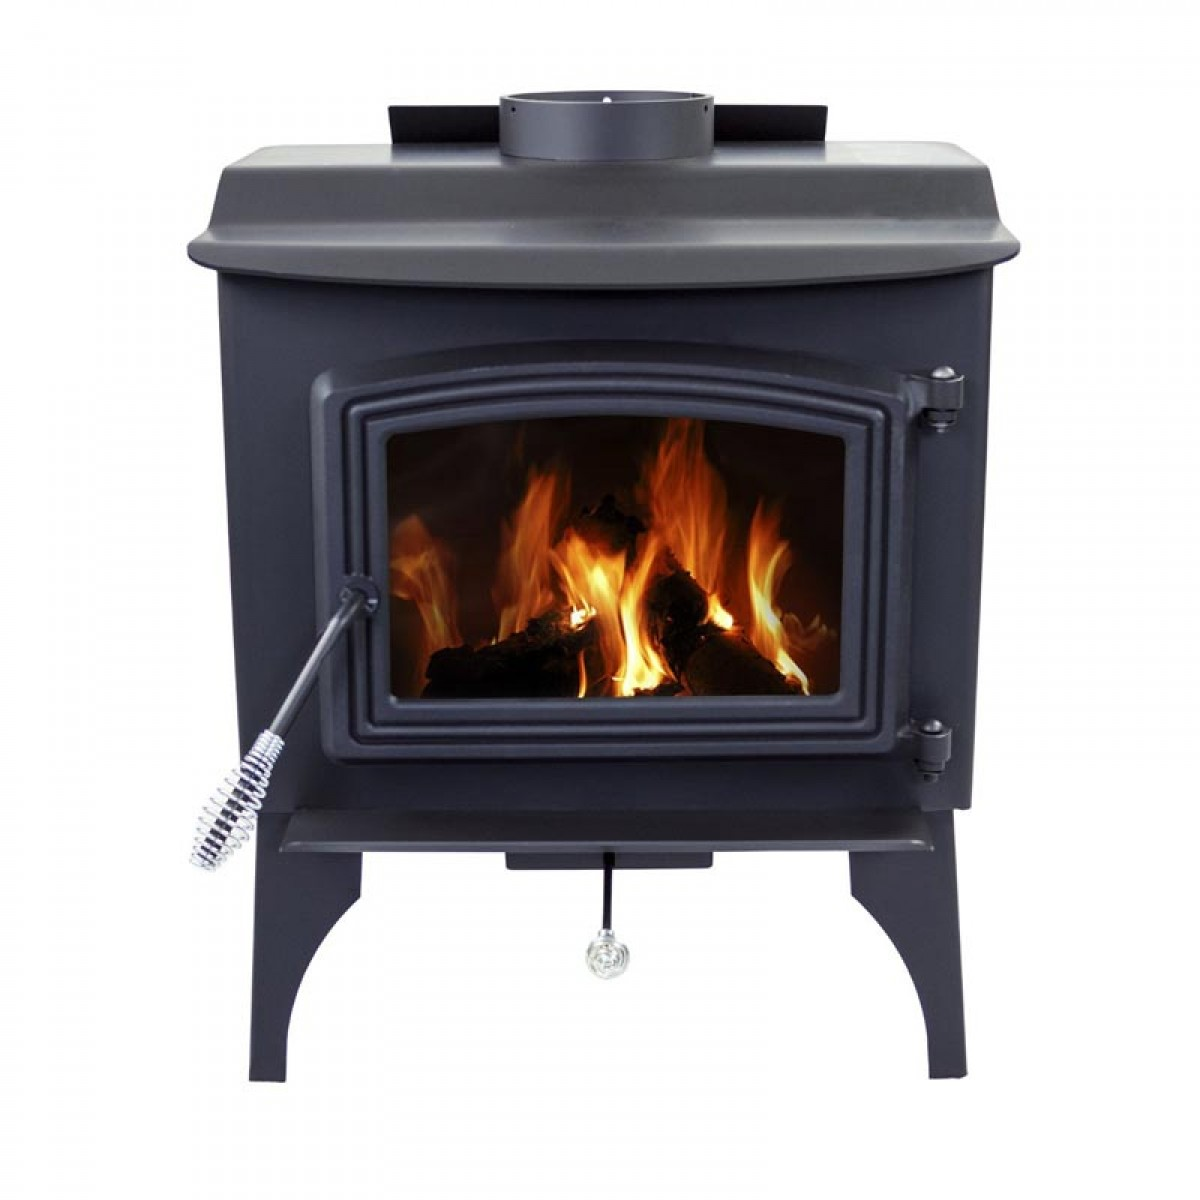 Pleasant Hearth: Pleasant Hearth Small Wood Burning Stove With Legs WS-2417